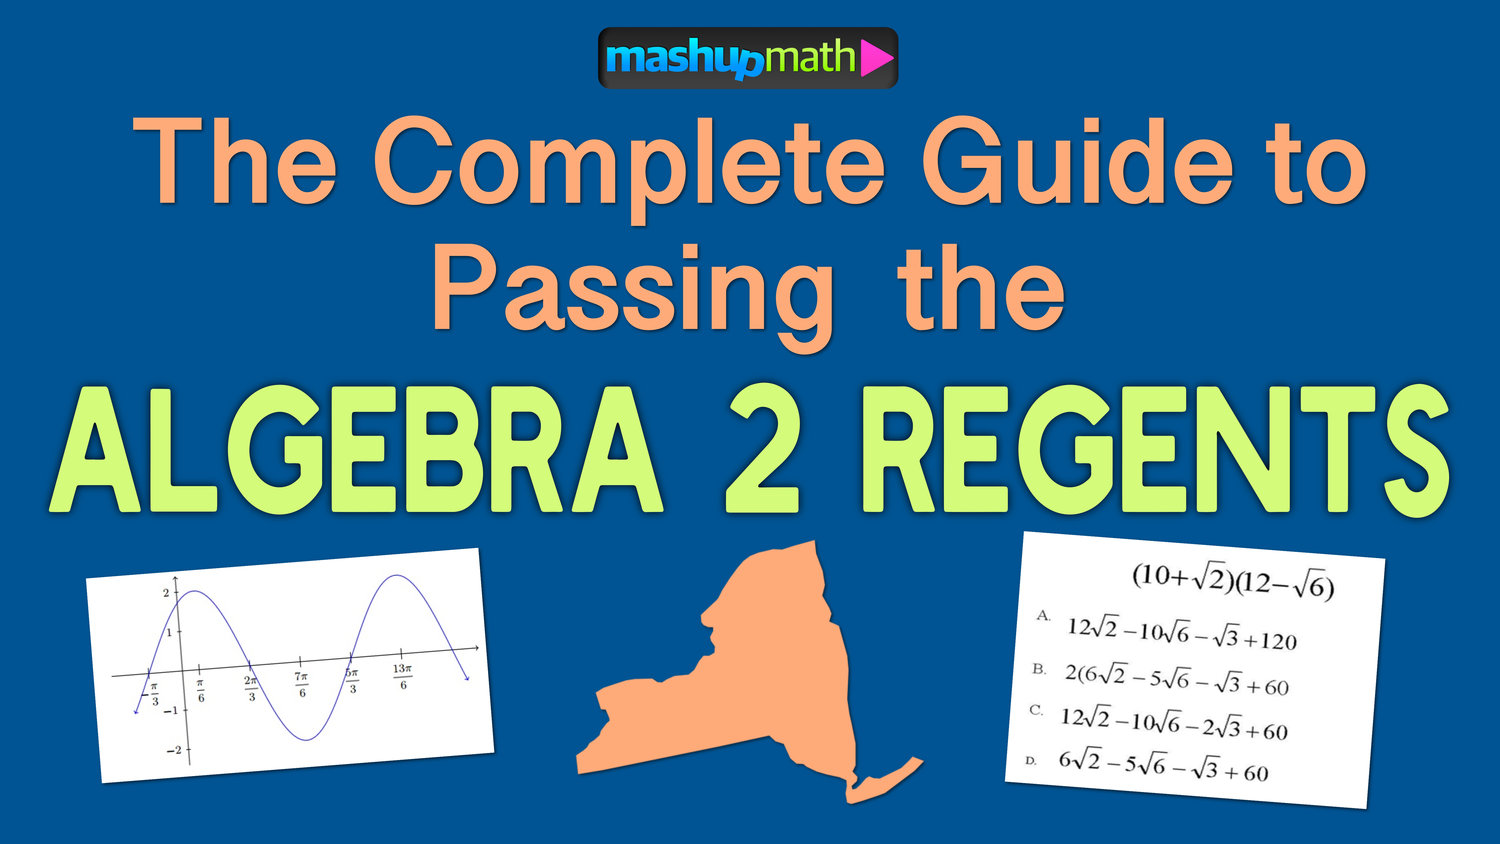 The Ultimate Guide to Passing the Algebra 2 Regents Exam